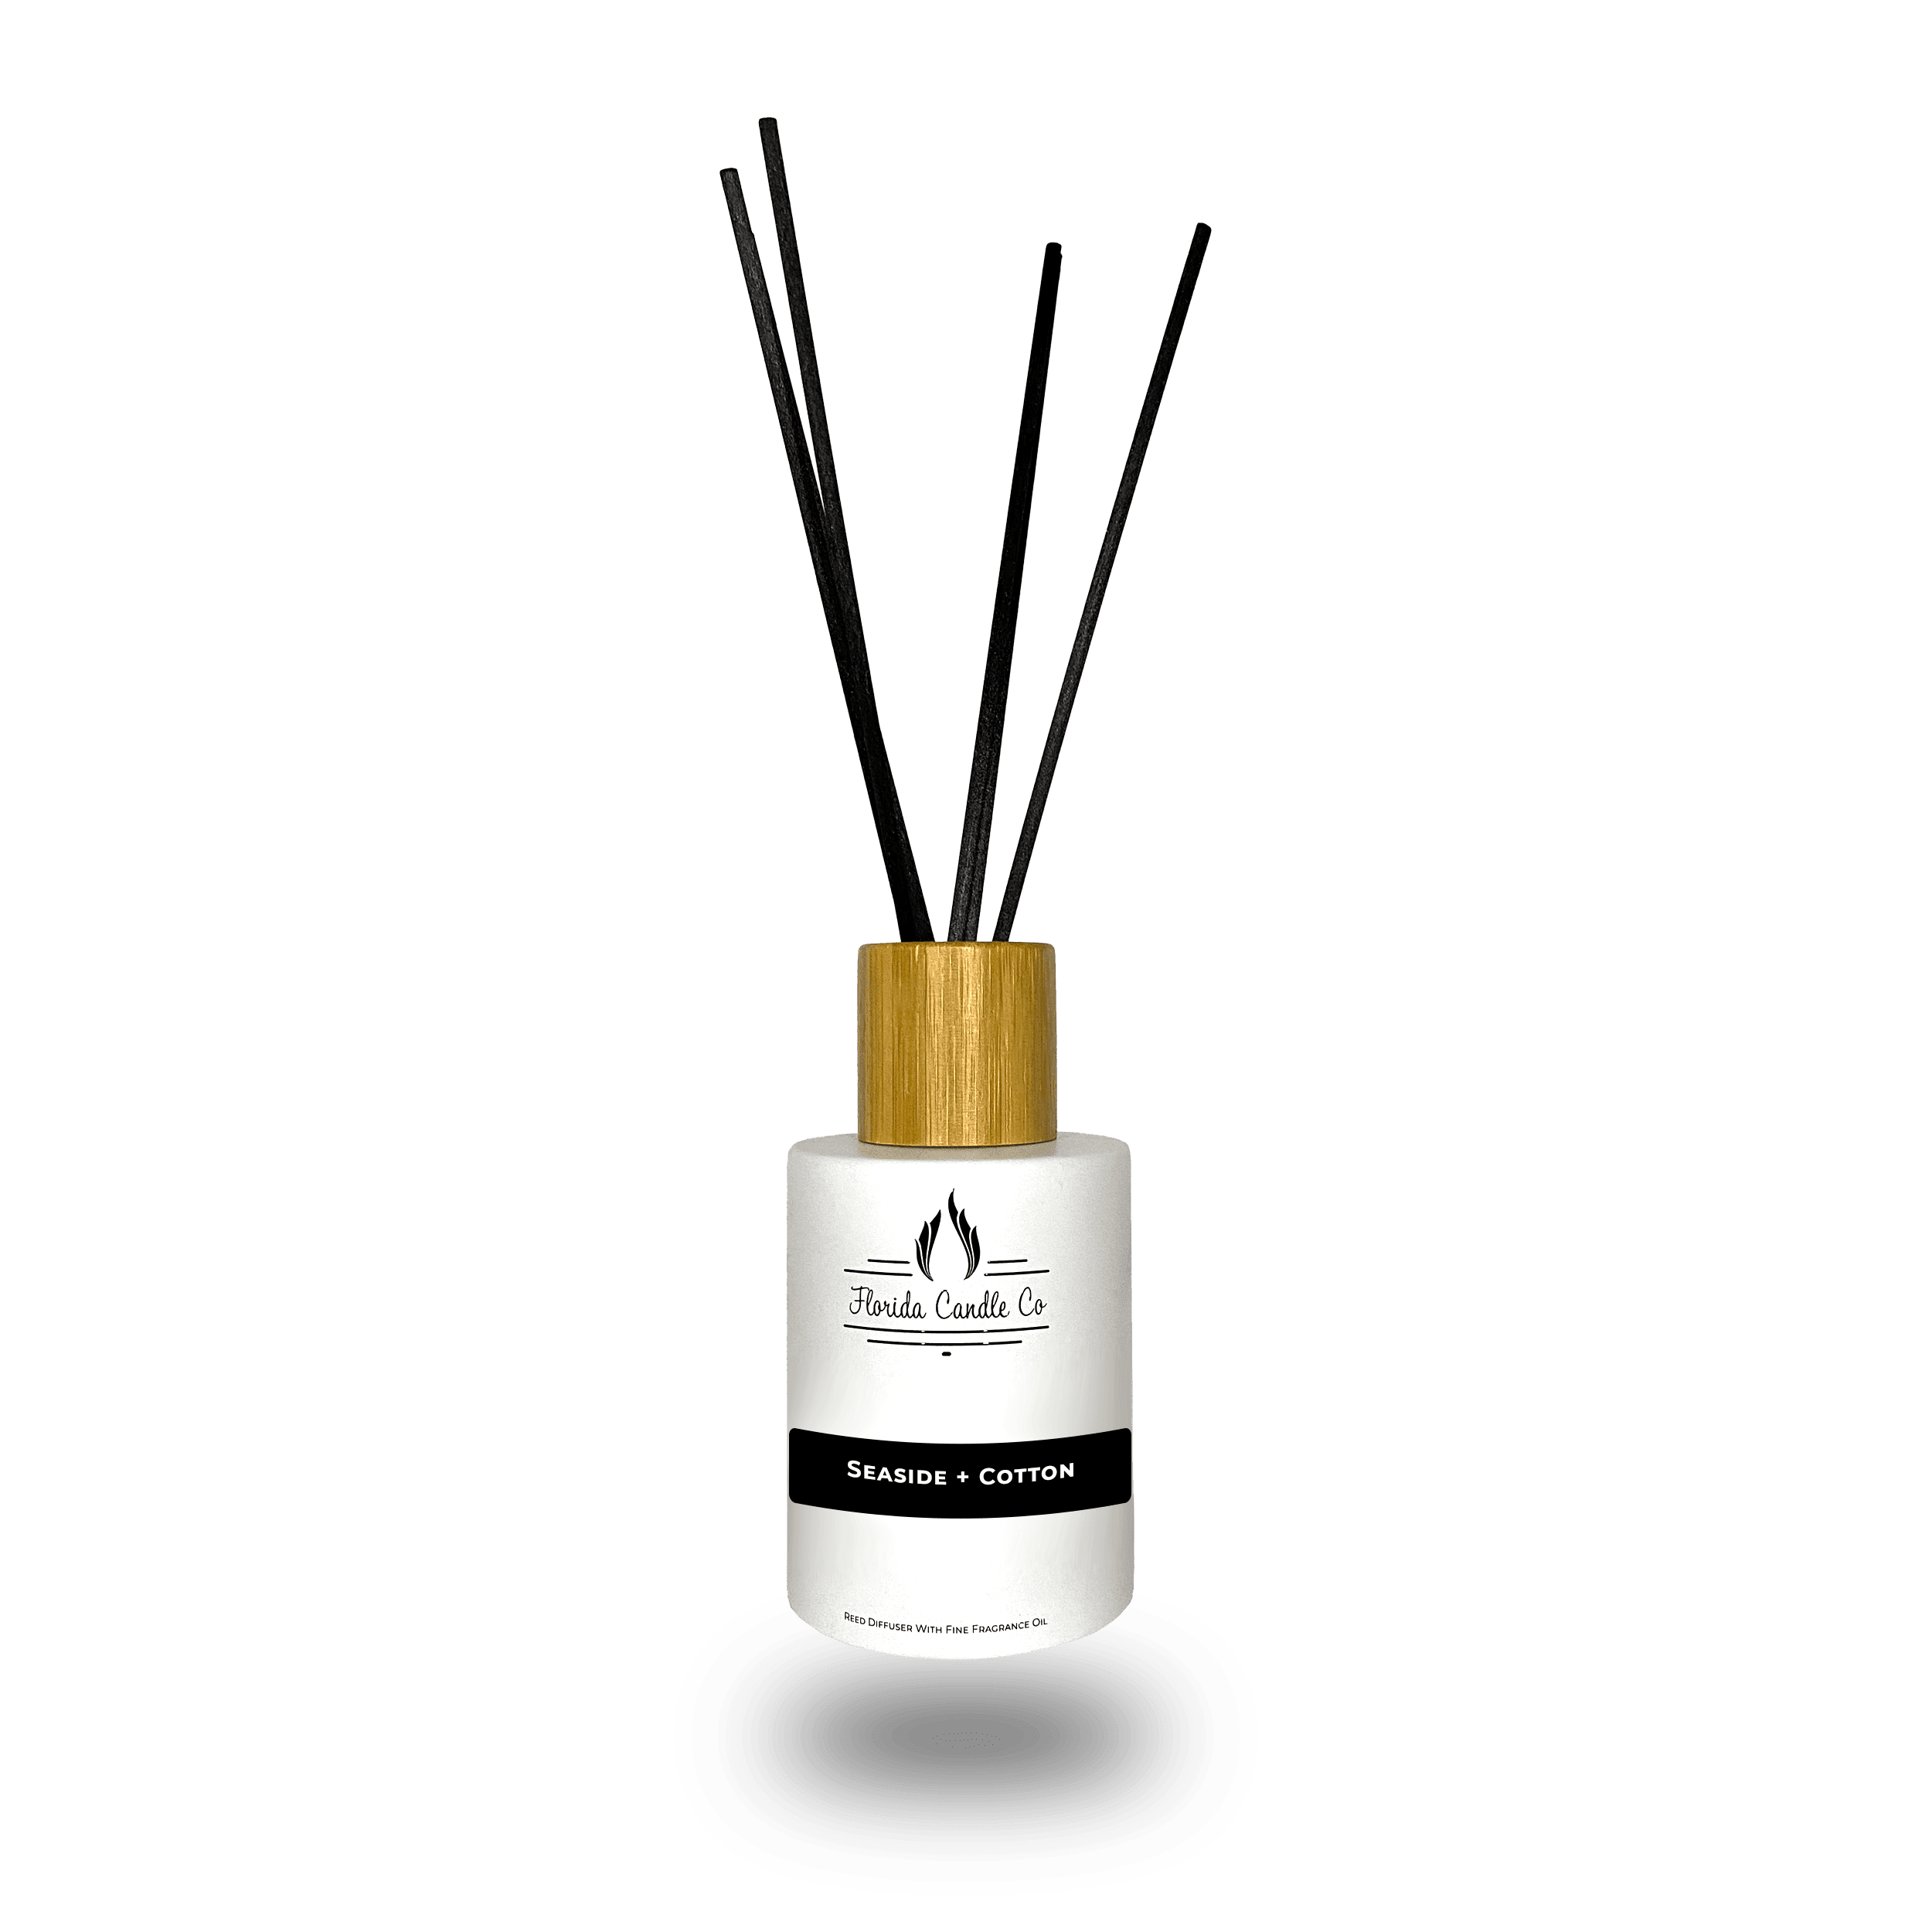 """Featured image for """"Seaside + Cotton Reed Diffuser"""""""